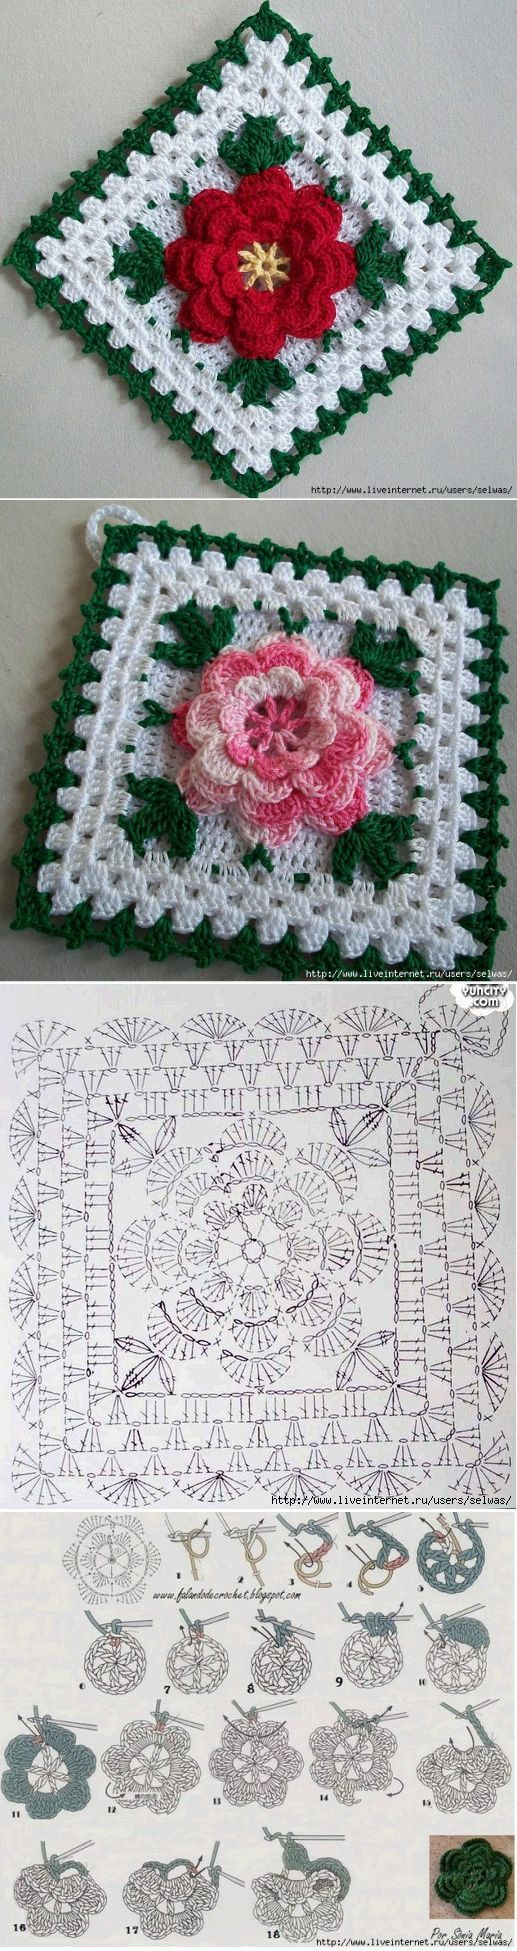 3217 best Projects to Try images on Pinterest | Crochet toys ...